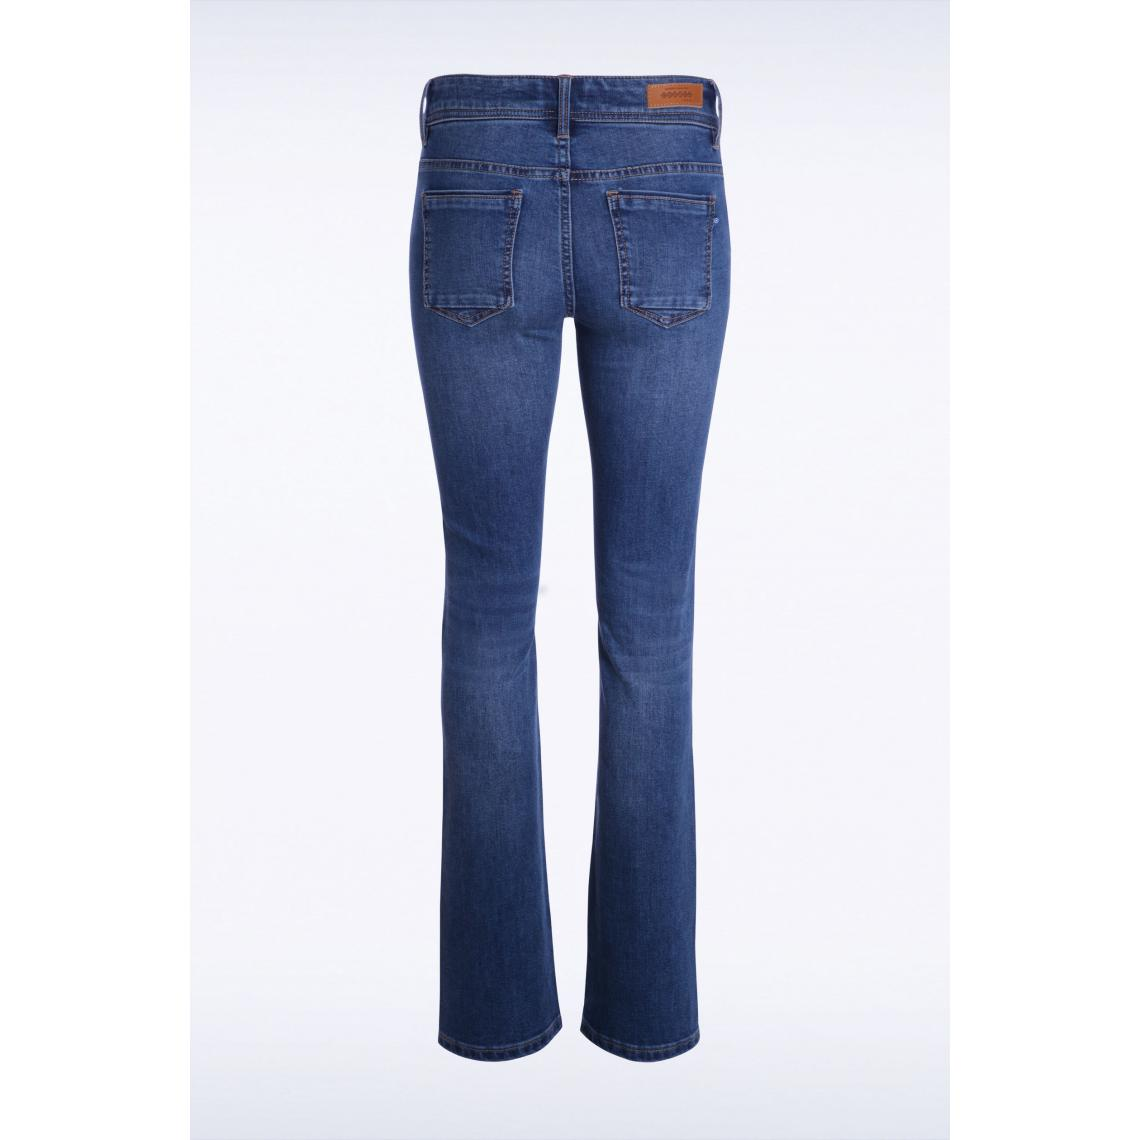 Jeans bootcut used Instinct | 3 SUISSES